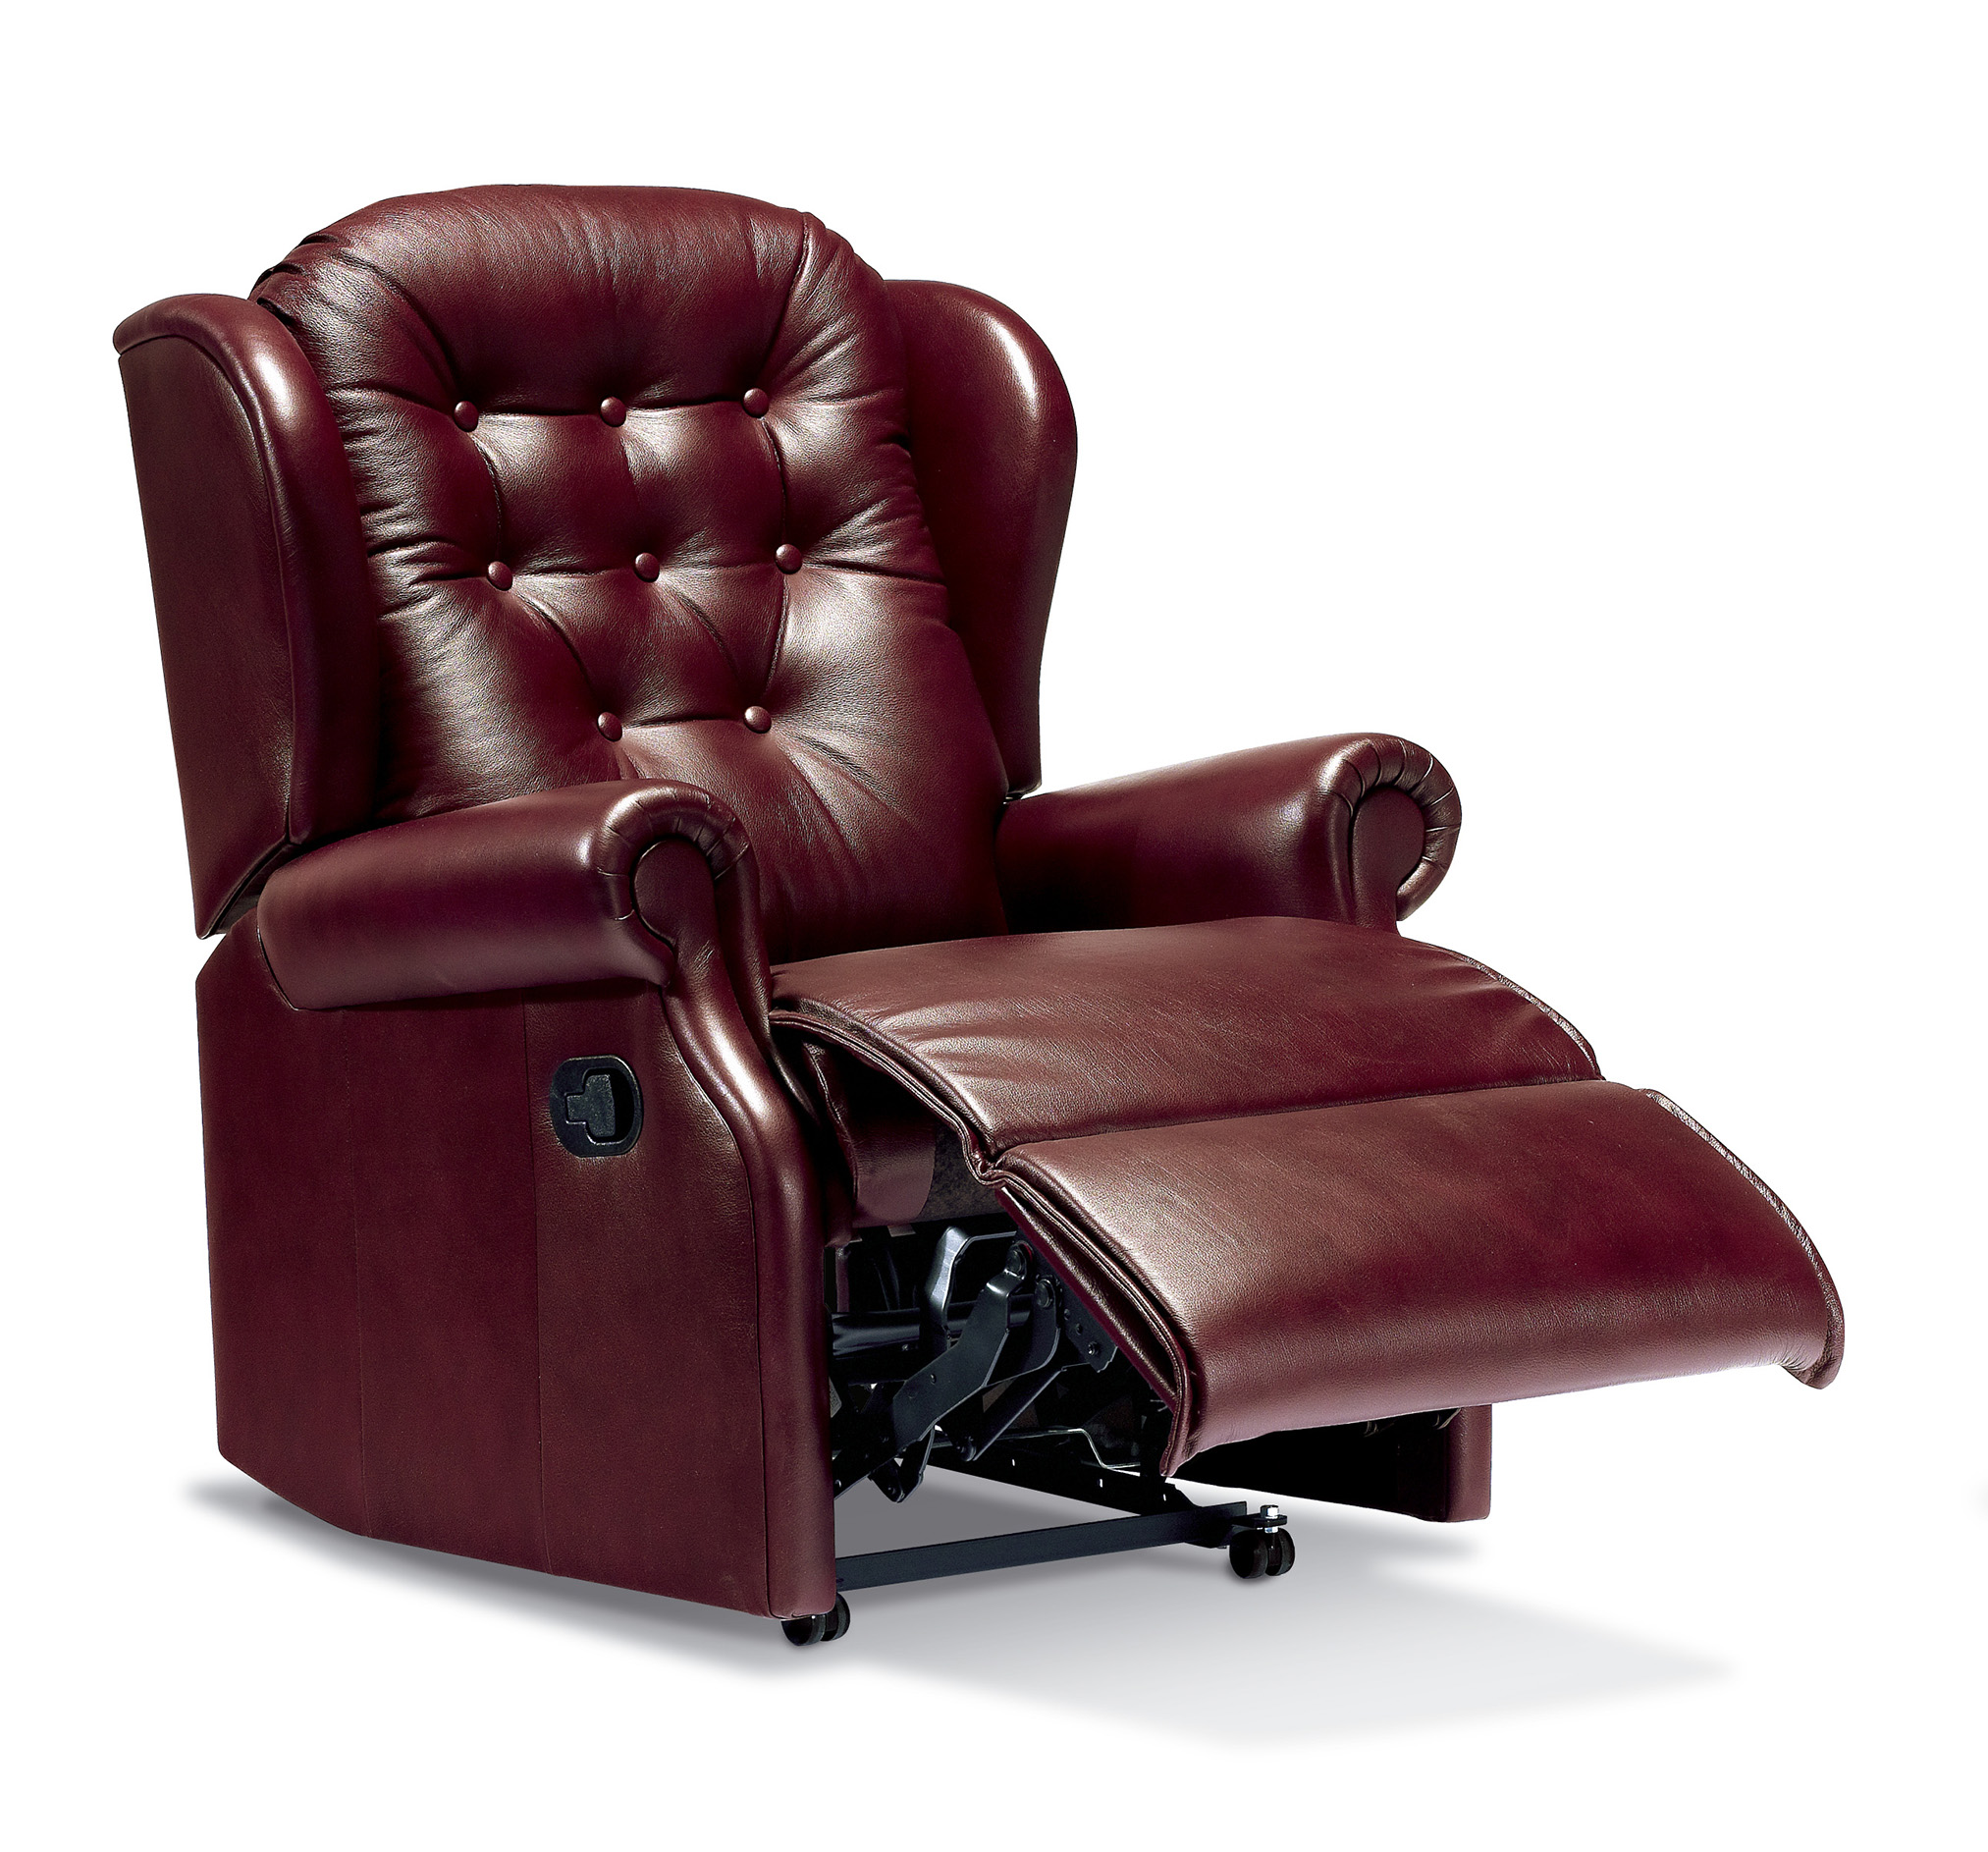 Lynton Small Leather Recliner - Sherborne Upholstery